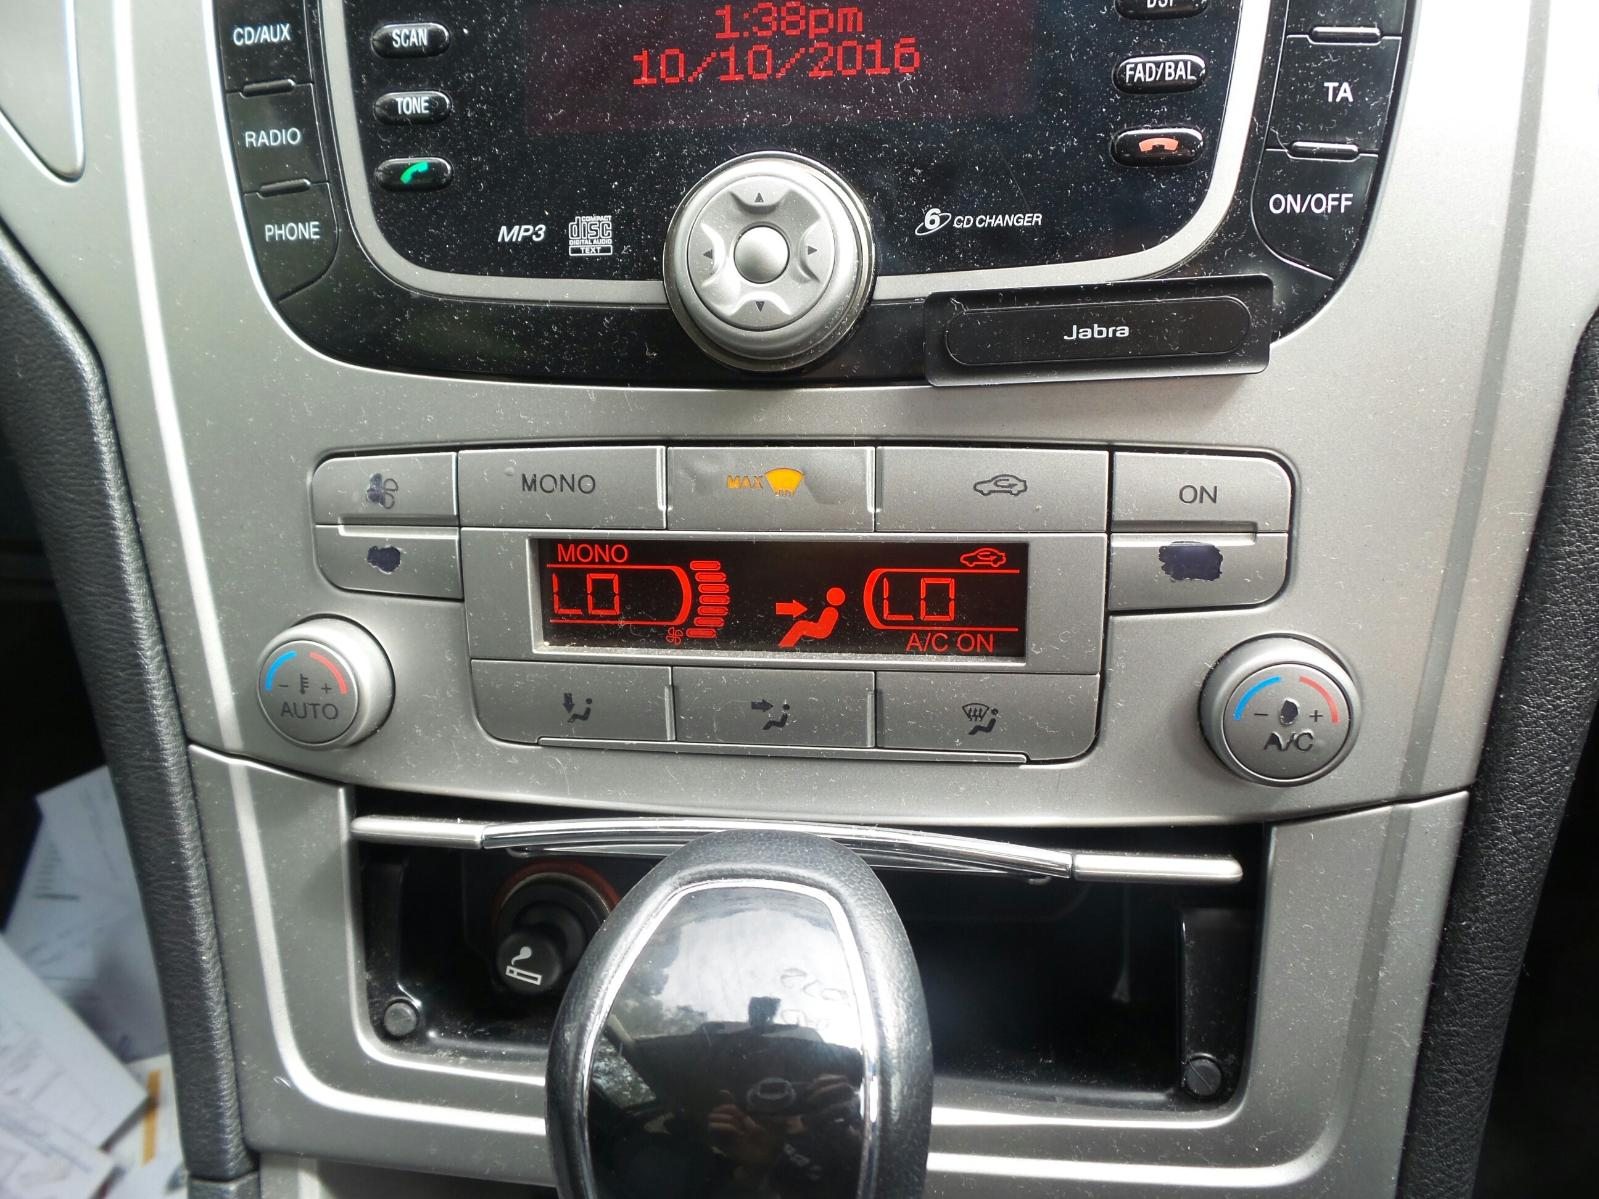 ford mondeo radio cd player stereo ebay. Black Bedroom Furniture Sets. Home Design Ideas